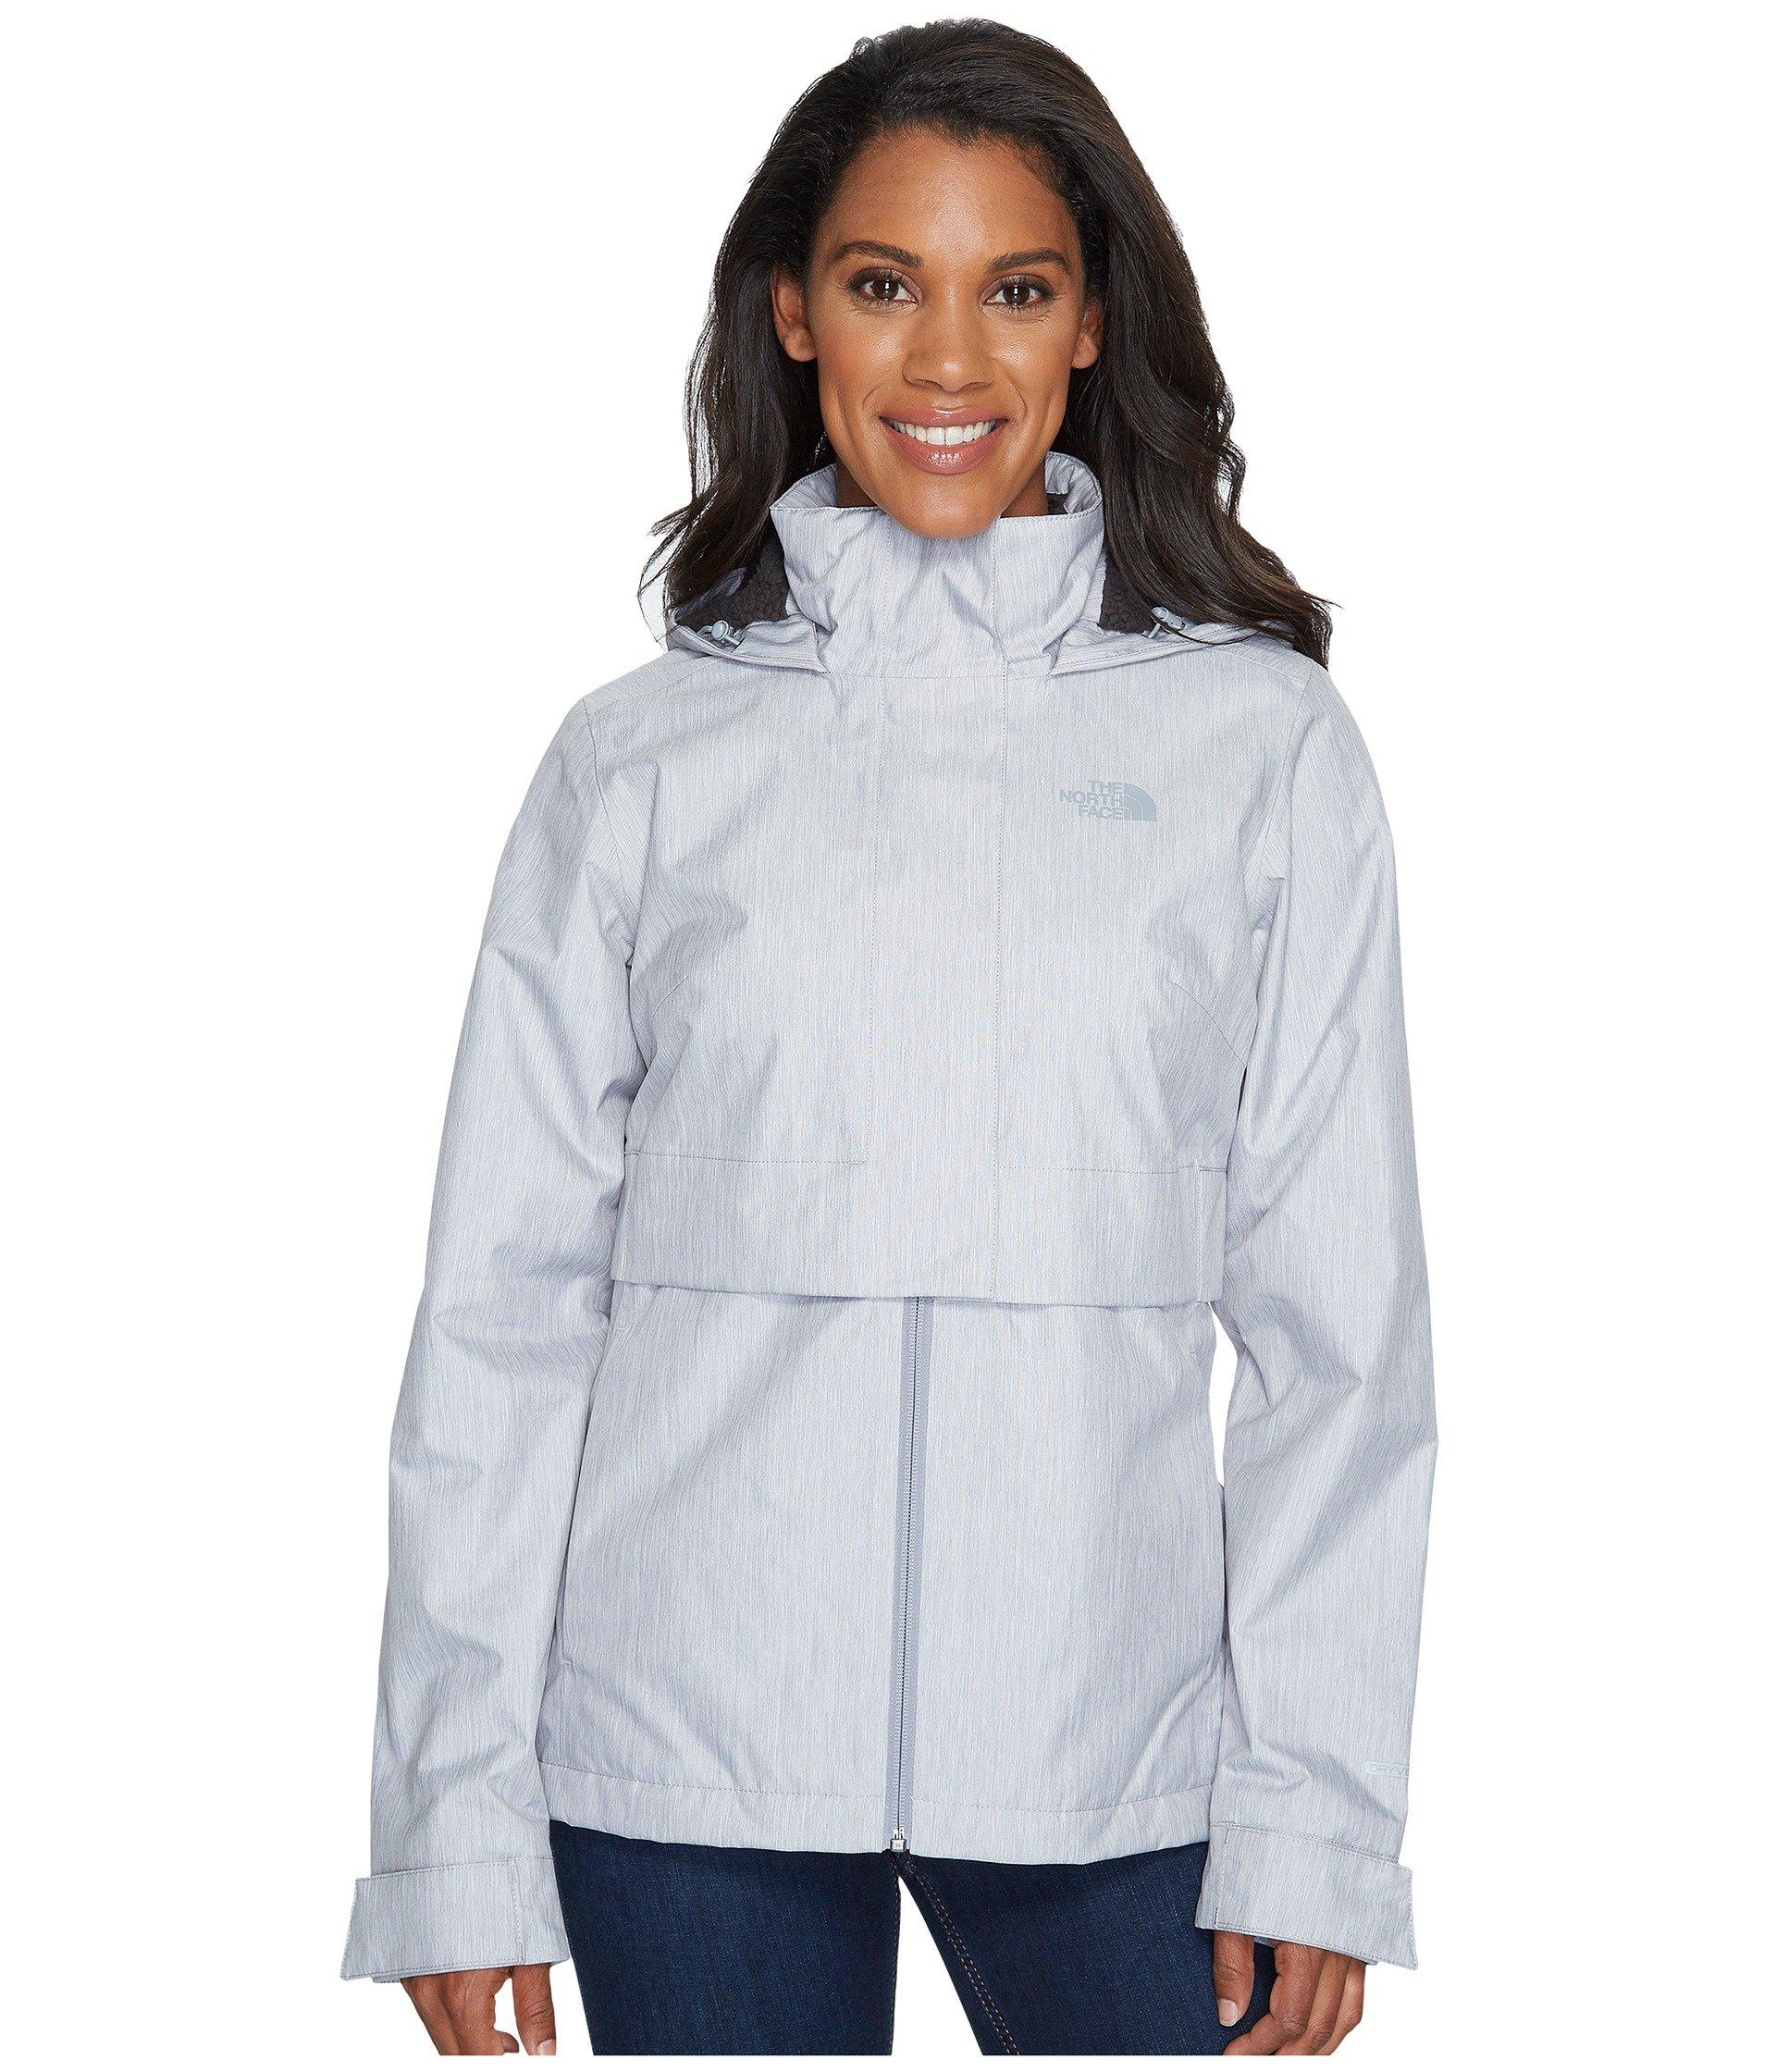 788026dc63a6 Lyst - The North Face Morialta Jacket in Gray - Save 44%